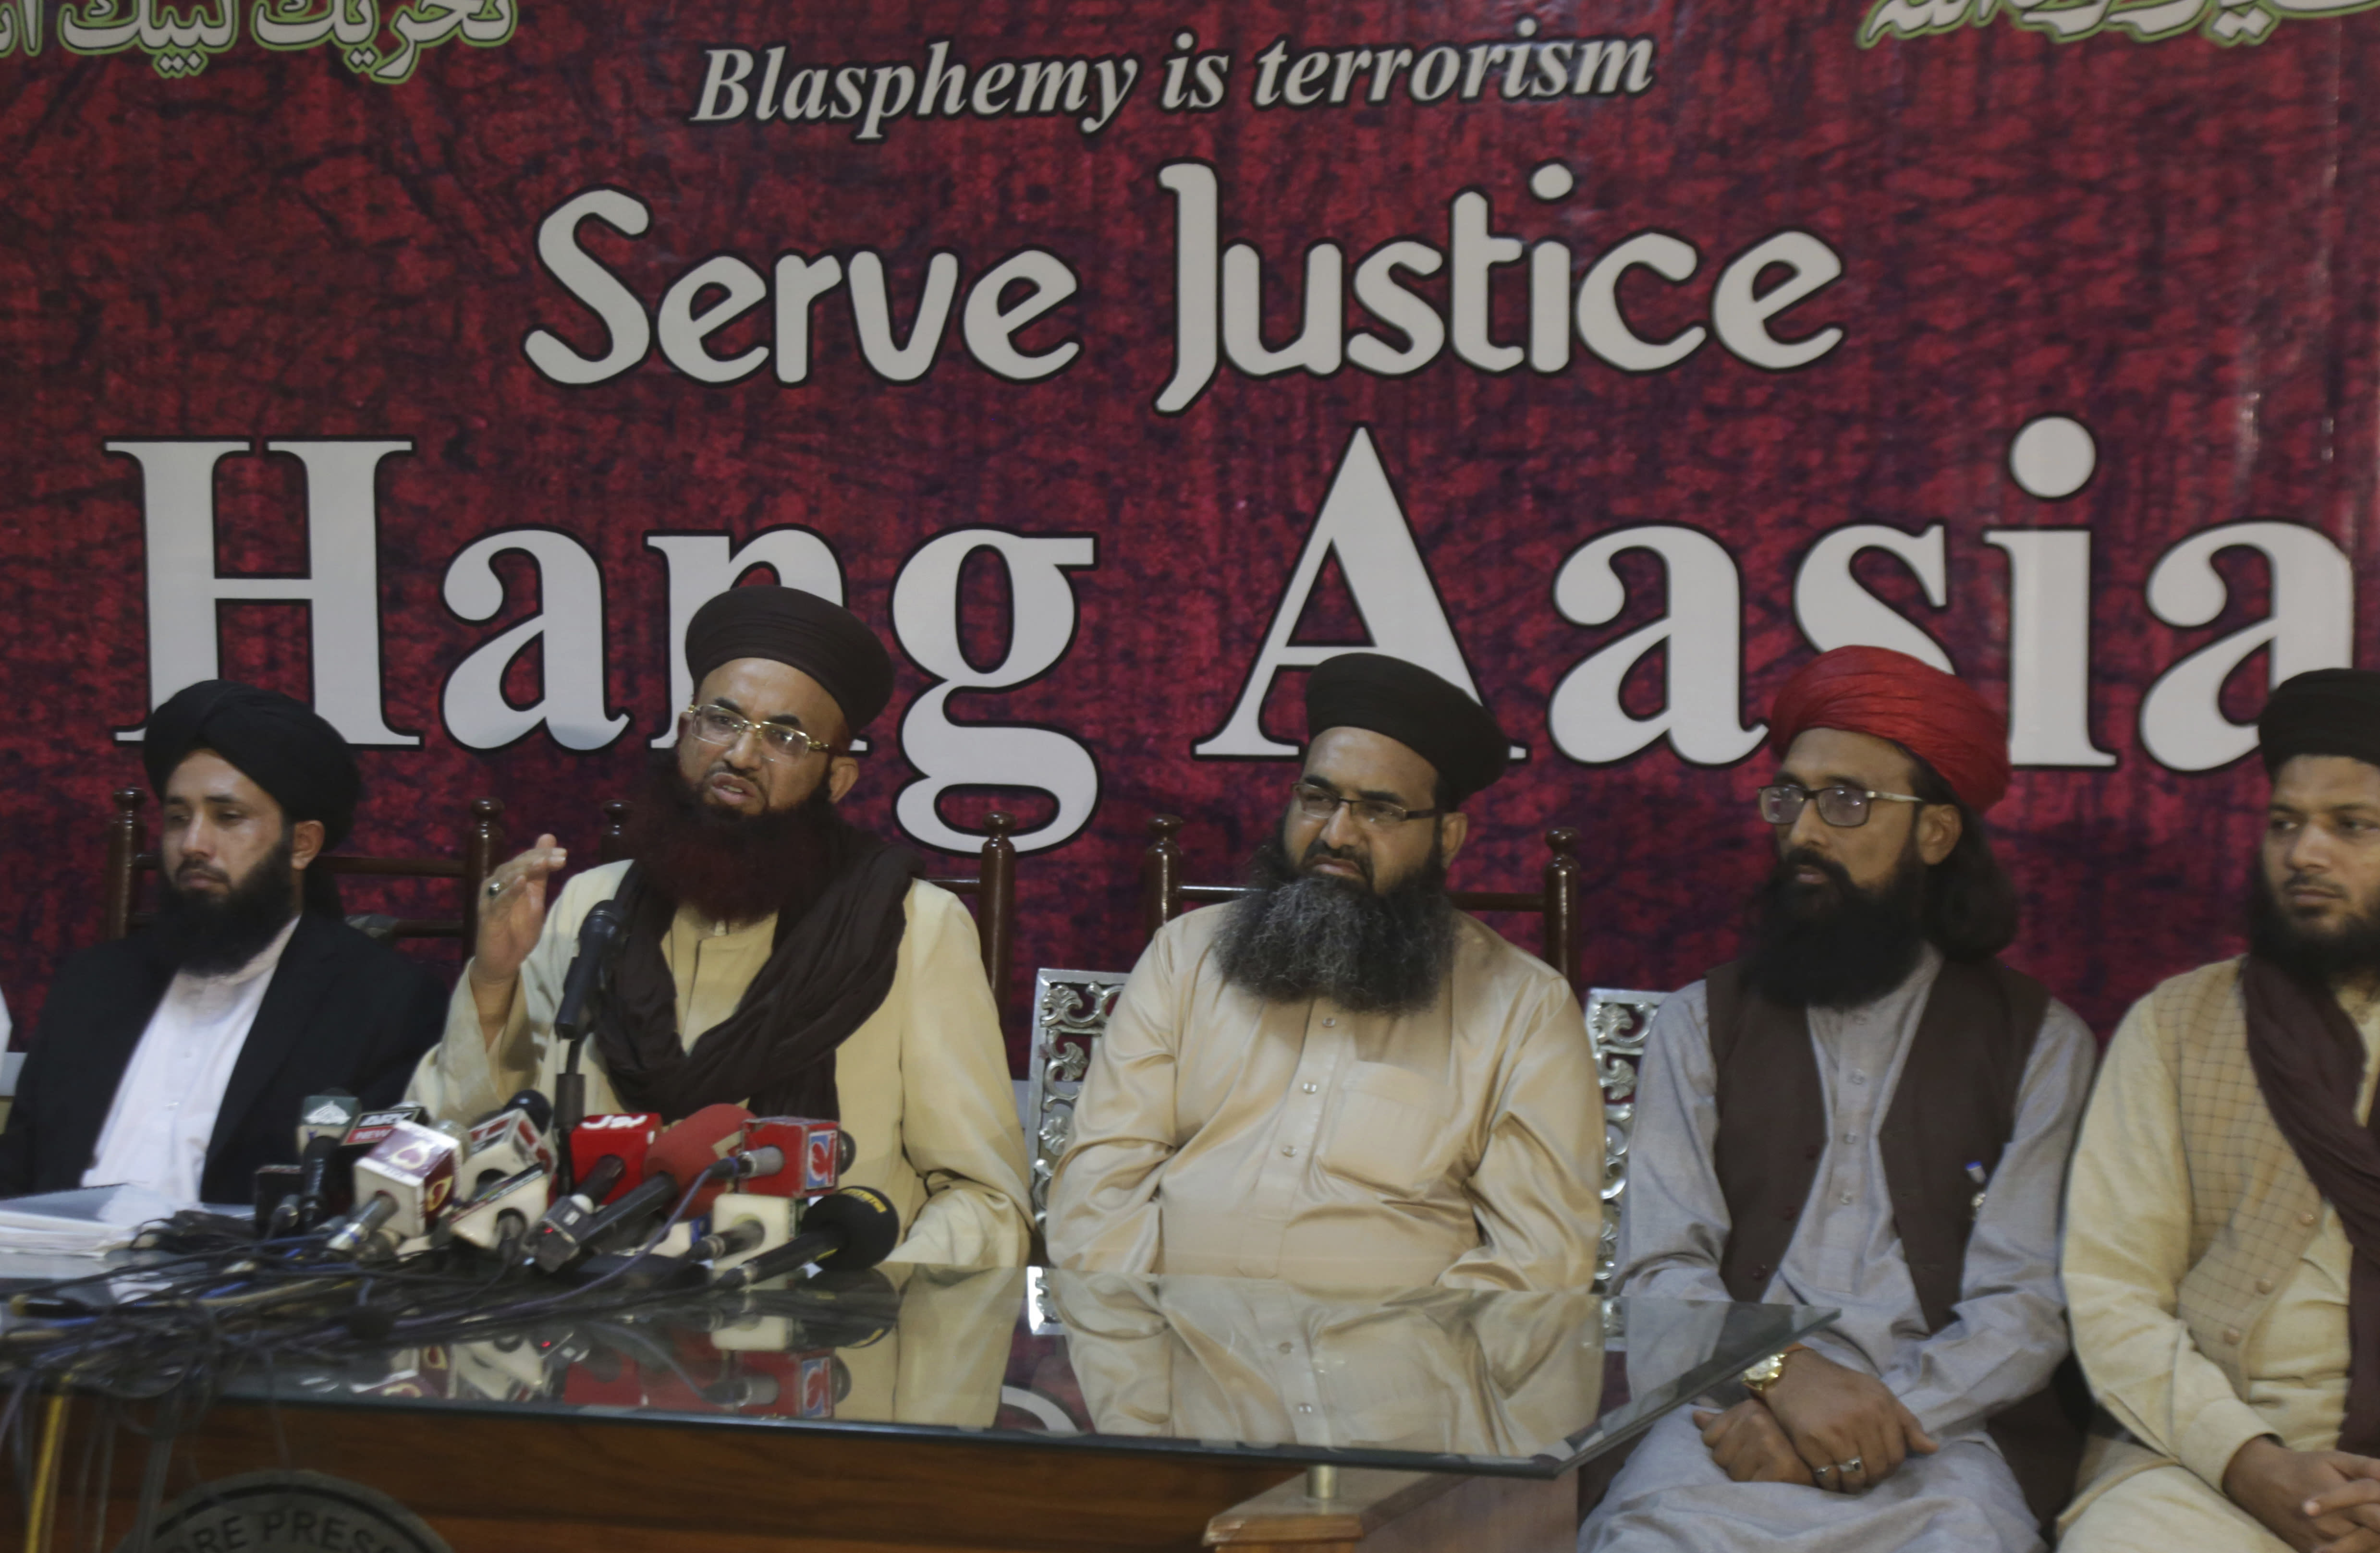 Ashraf Asim Jalali, second from left, leader of Pakistani Tehreek-e-Labbaik religious Party addresses a news conference with others regarding the acquittal of Christian woman Asia Bibi, in Lahore, Pakistan, Thursday, Nov. 8, 2018. A Christian woman acquitted after eight years on death row in Pakistan for blasphemy was released but her whereabouts in Islamabad on Thursday remained a closely guarded secret in the wake of demands by radical Islamists that she be publicly executed. (AP Photo/K.M. Chaudary)